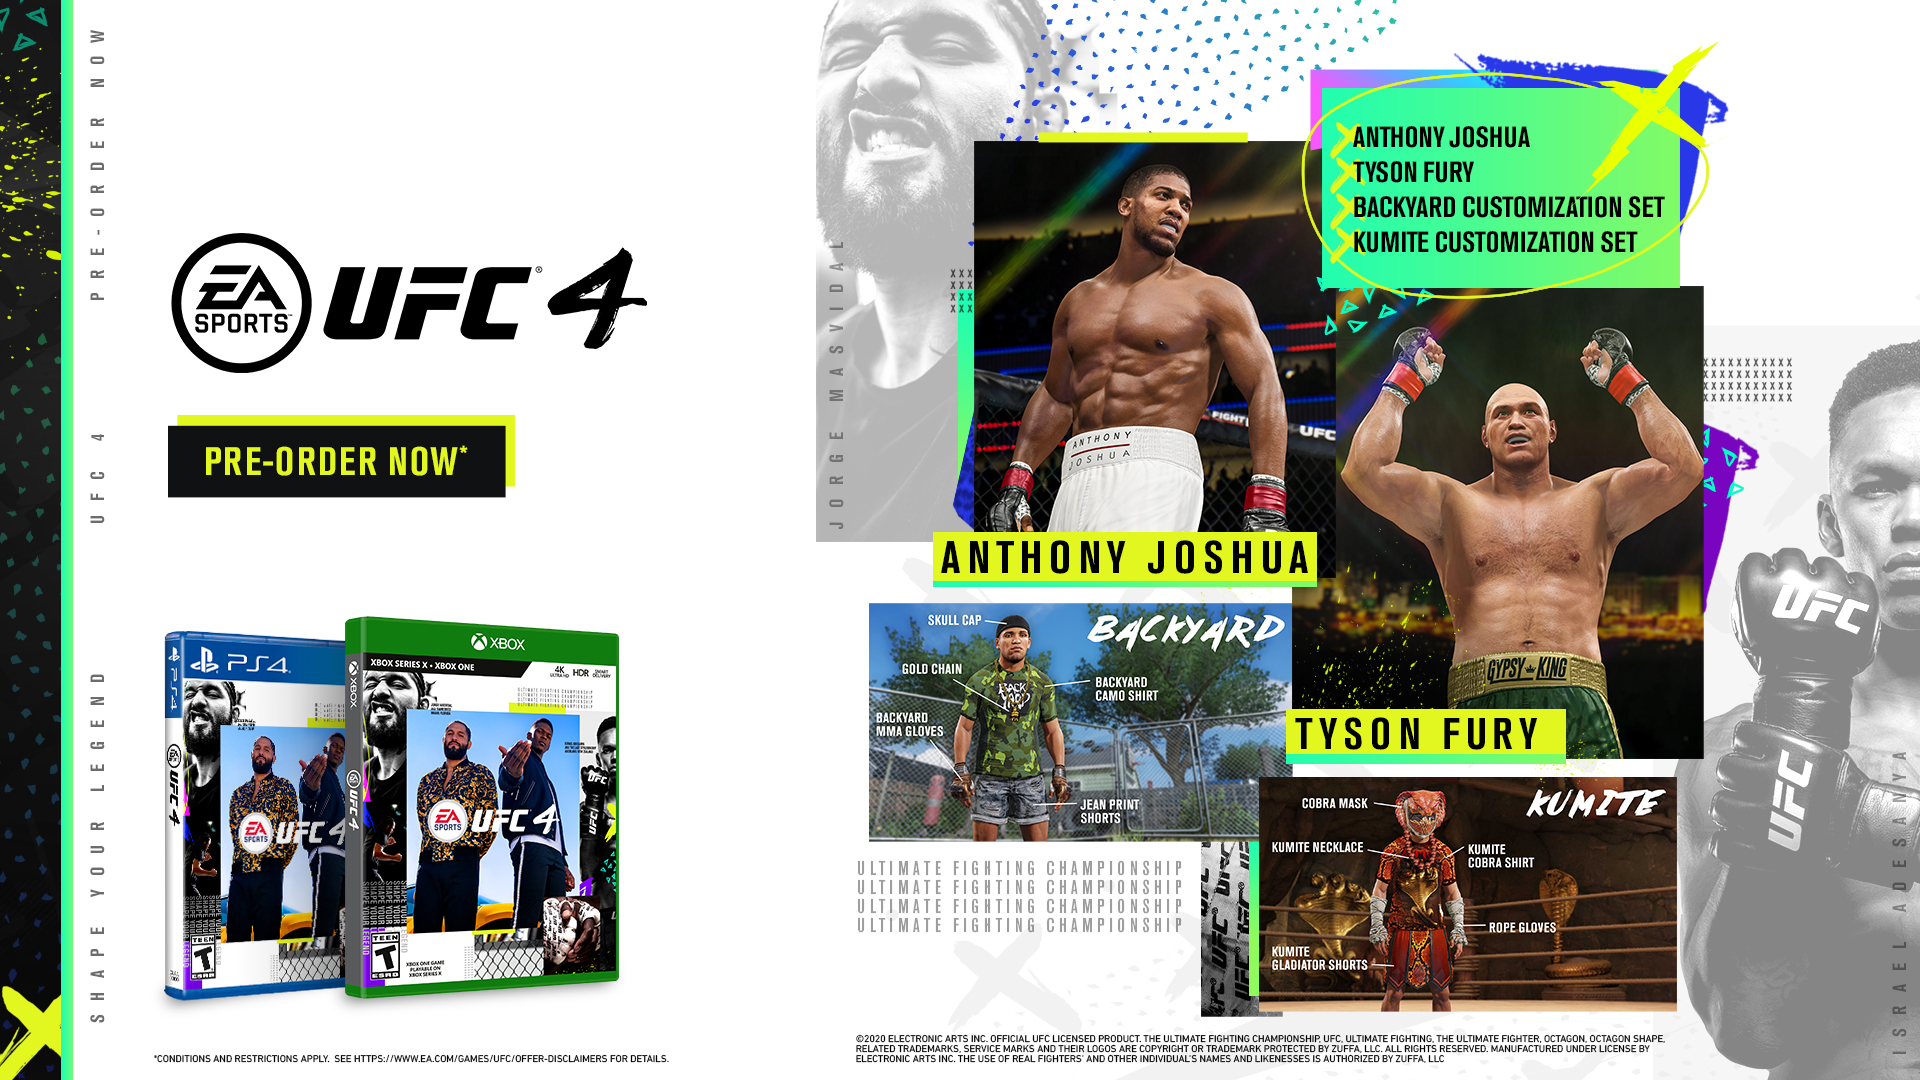 Ea Sports Ufc 4 Game Preorders